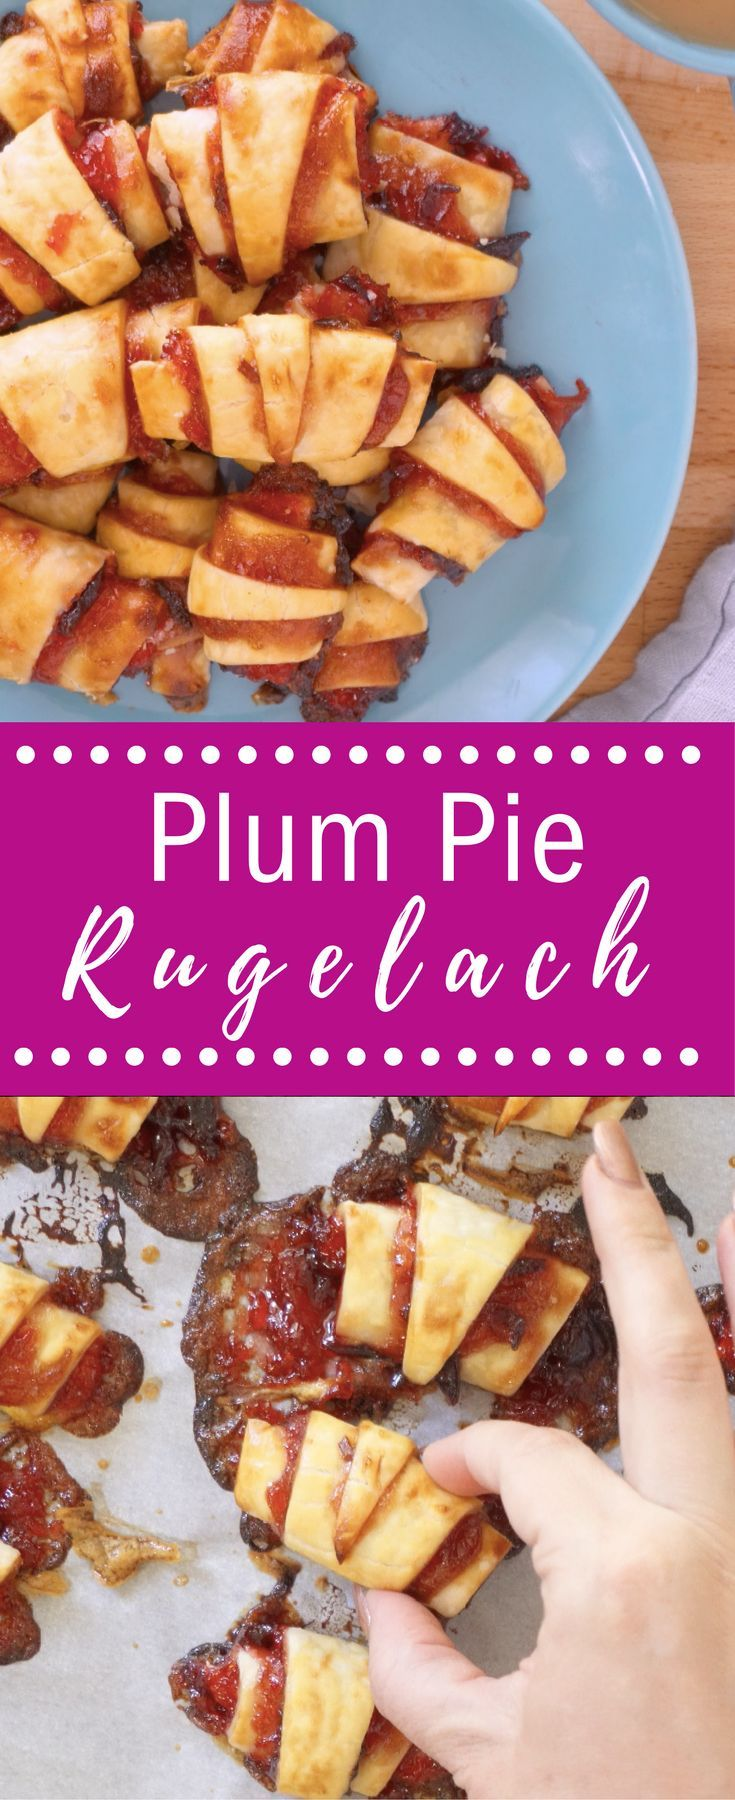 Check out our Plum Pie Reugelach recipe! Perfect combination of tart and sweet. Plums are the final �stone�  fruit of the season to appear in markets and signify the end of summer,  so their appearance is bittersweet!